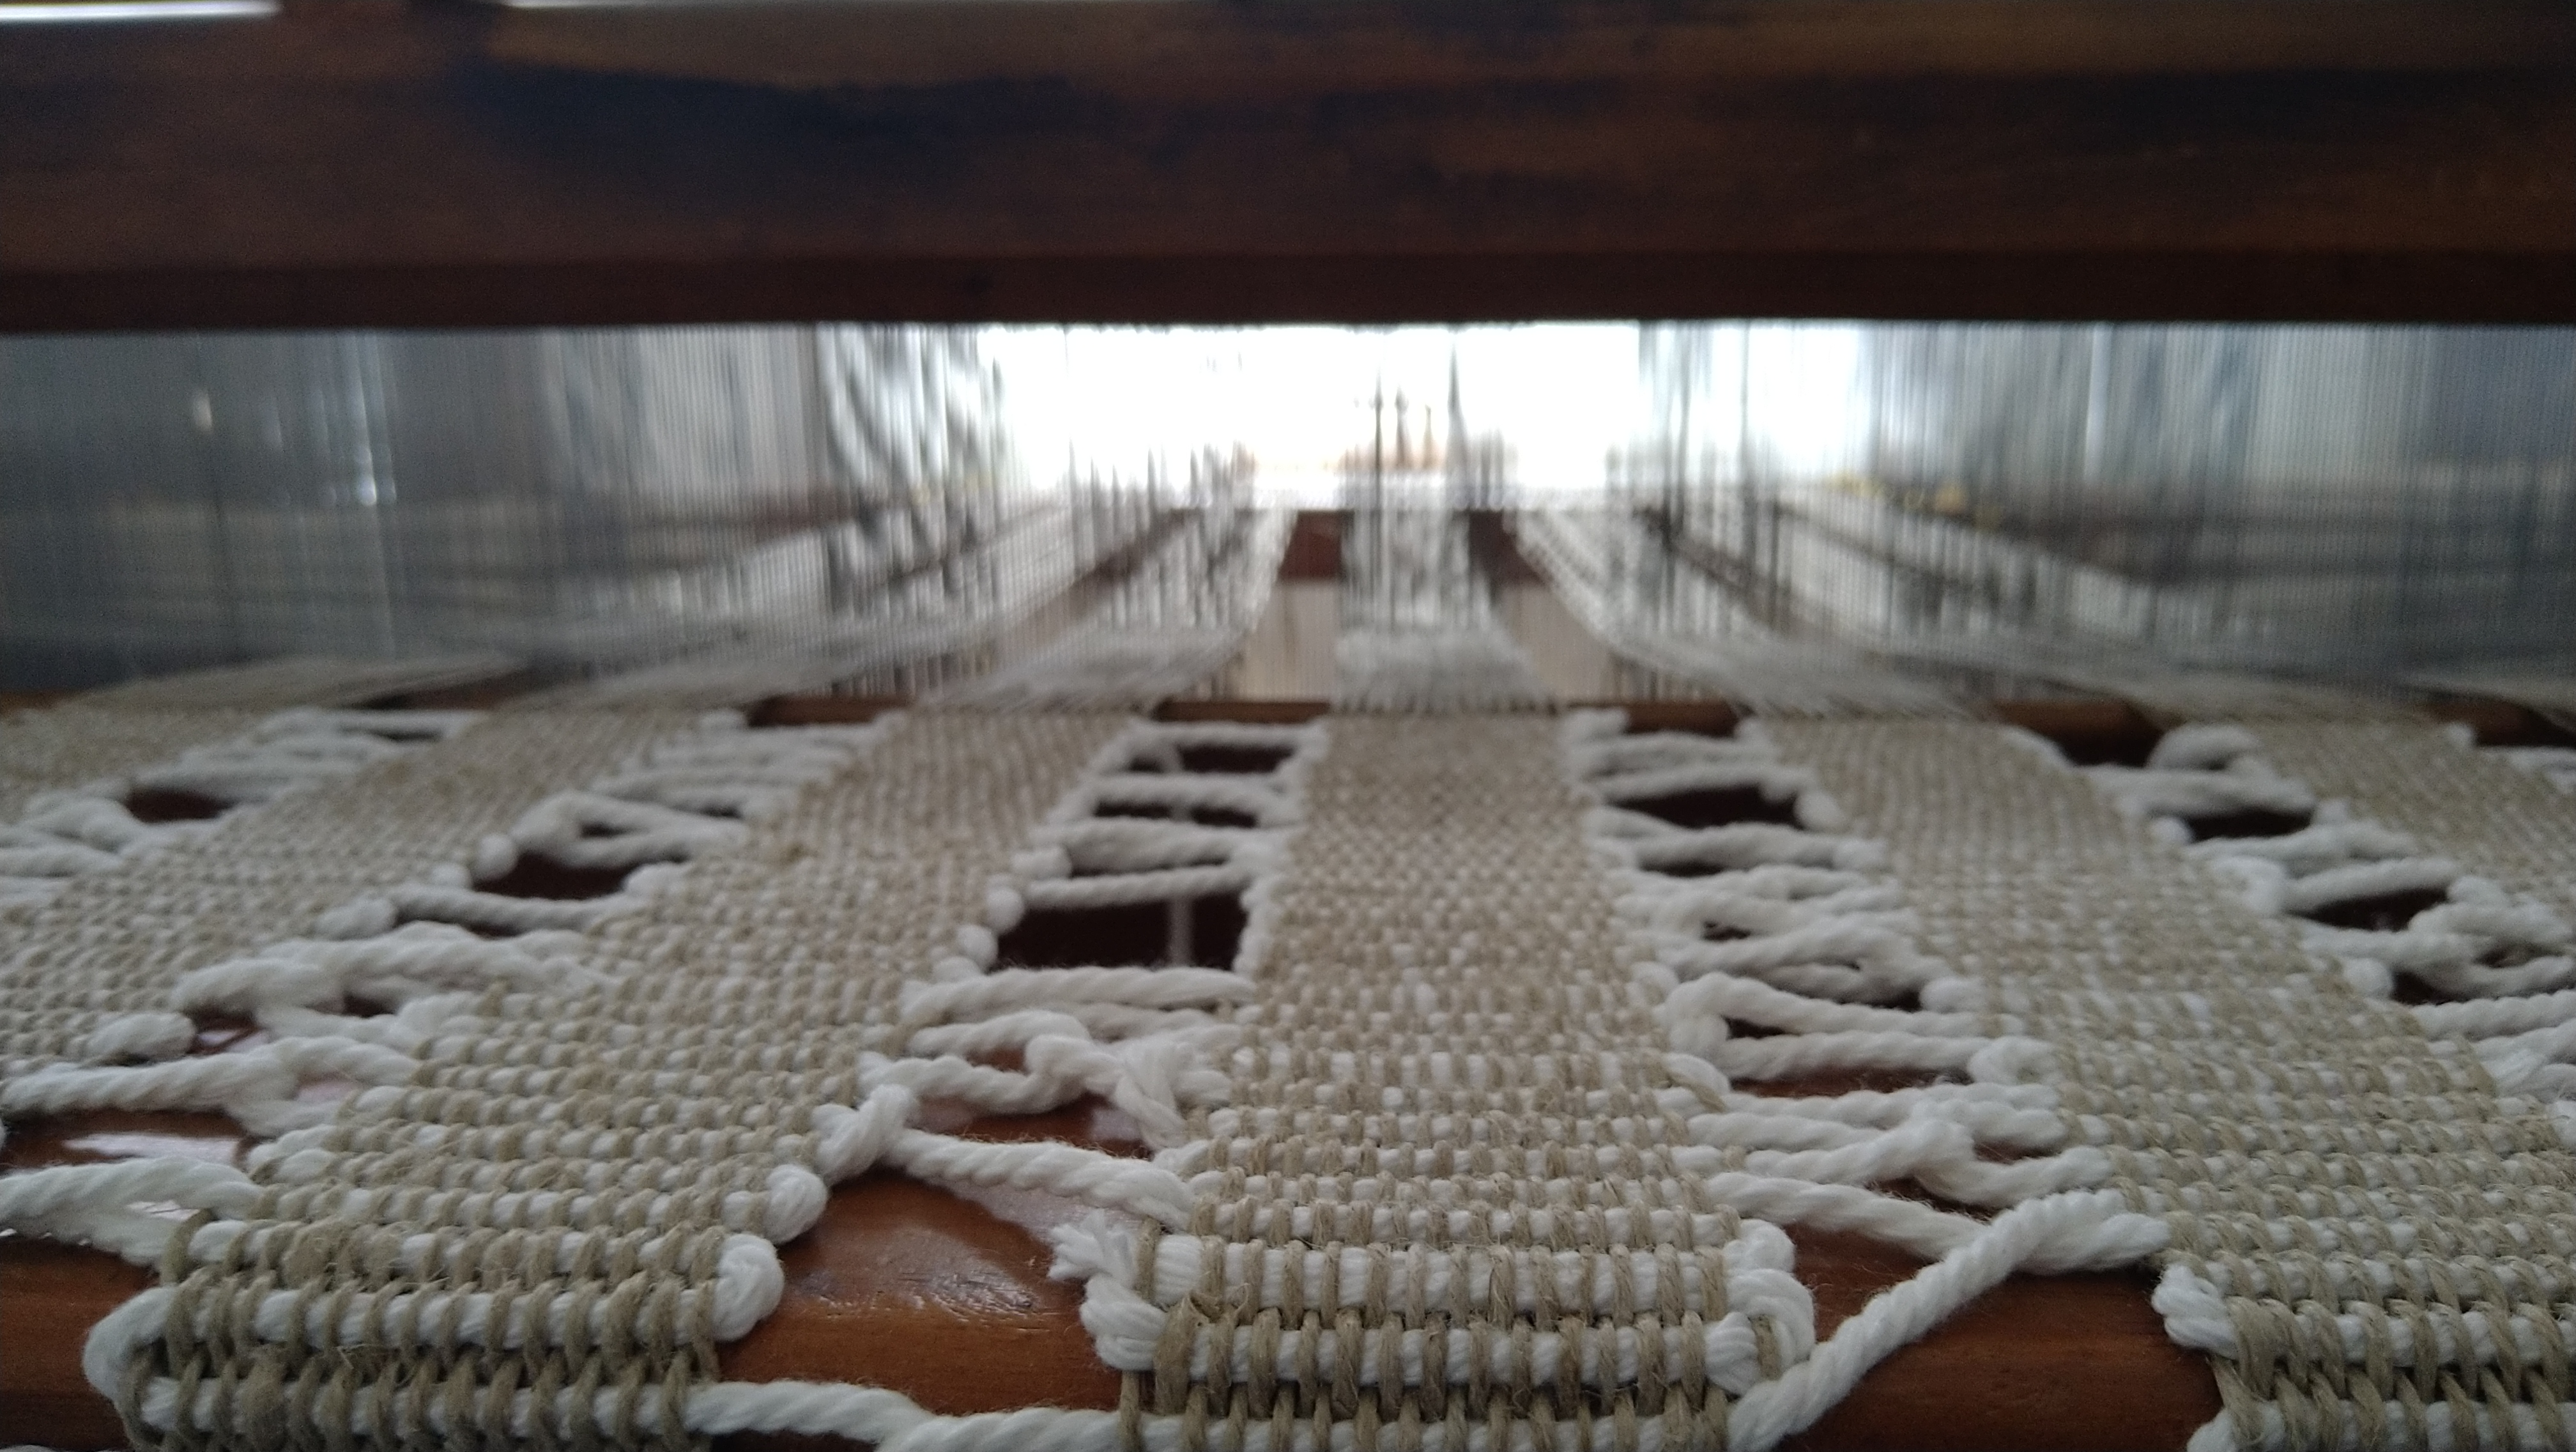 Information flows - close up of handweaving on the loom